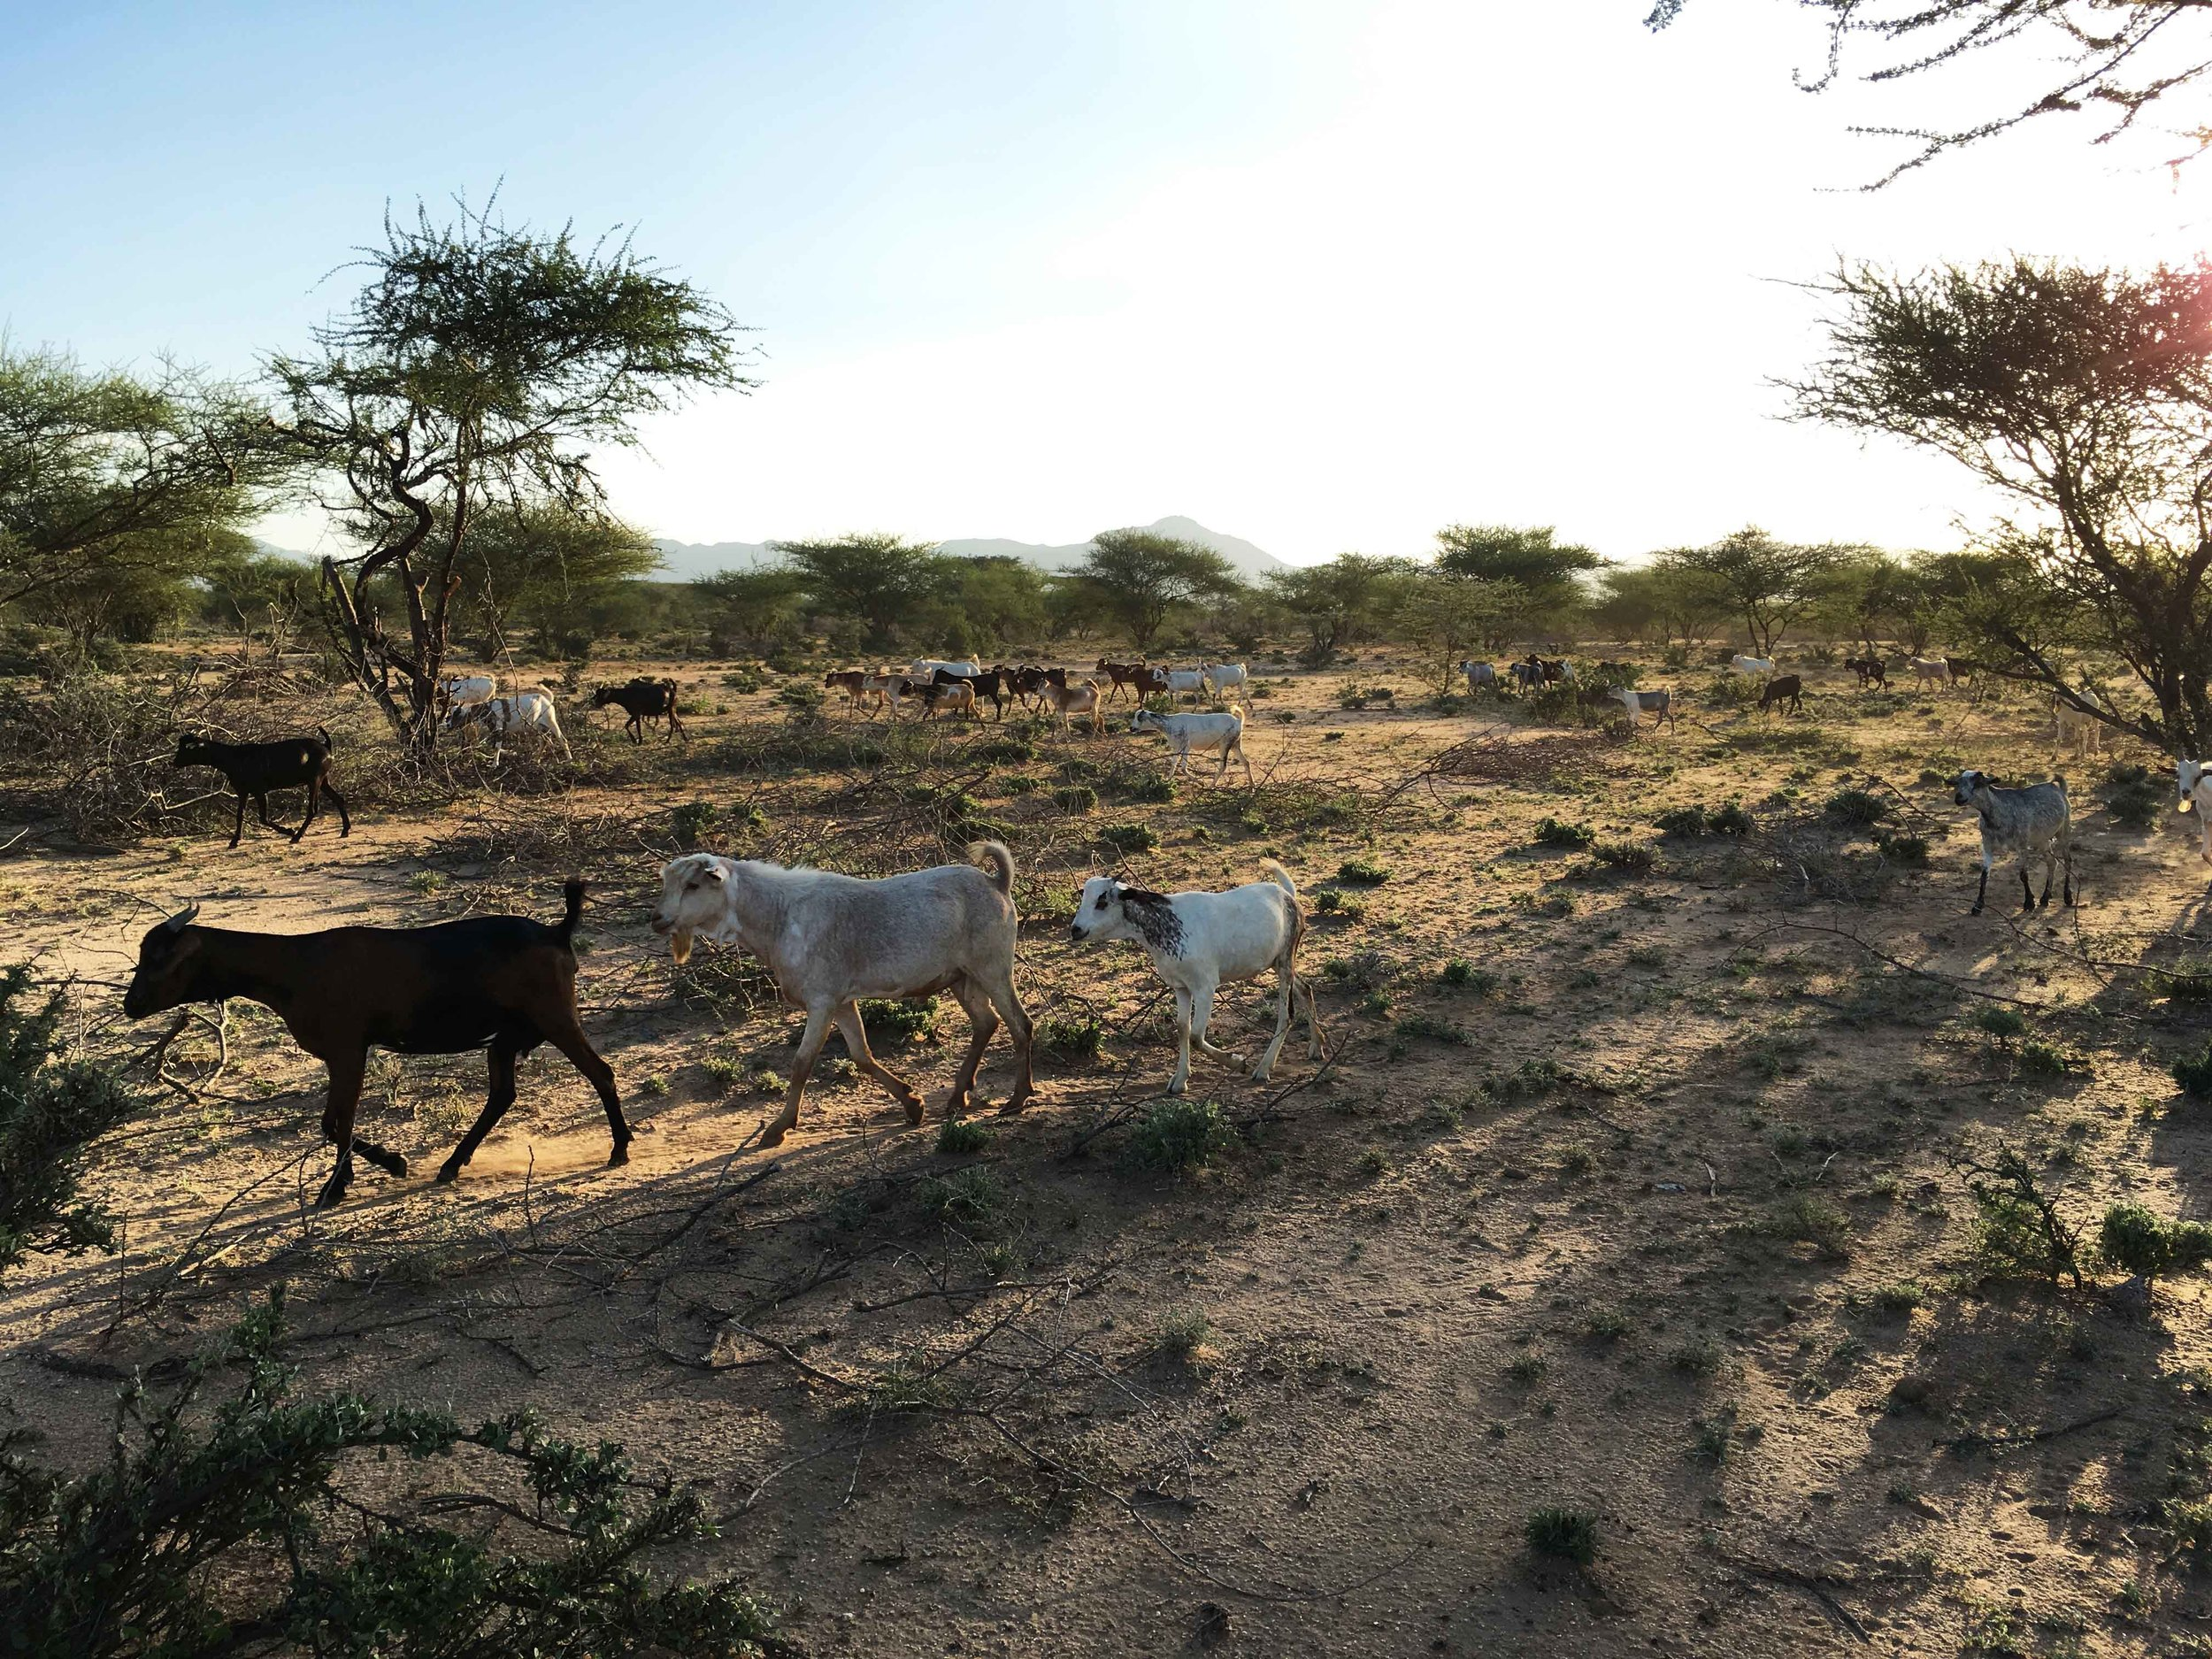 Goat grazing and dersertification